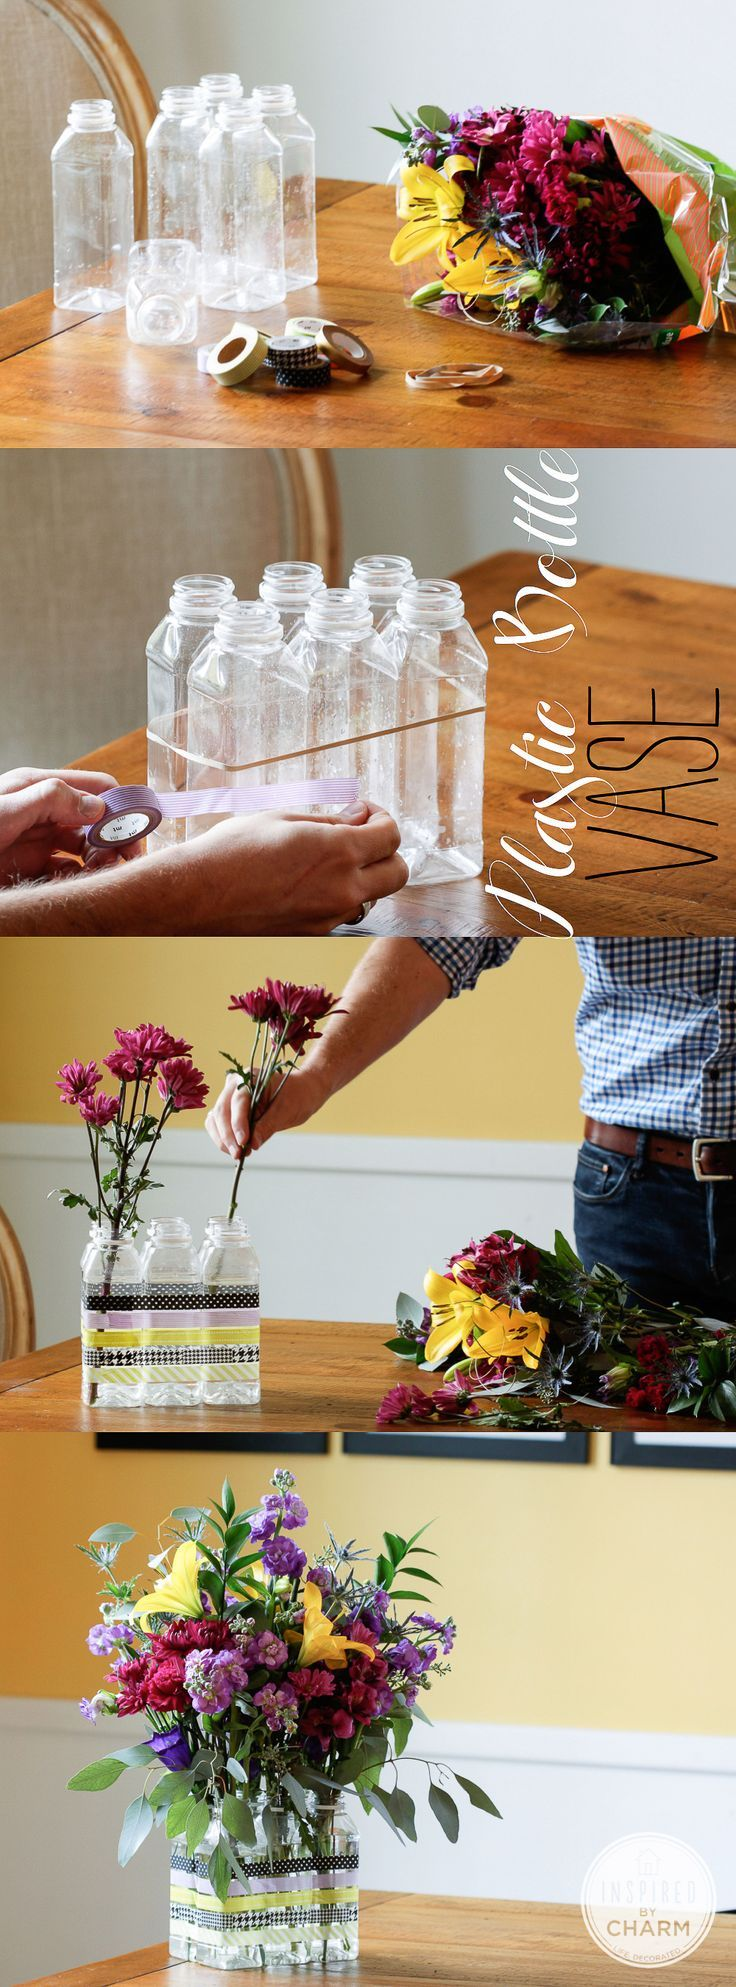 Diy plastic bottle vase pictures photos and images for facebook diy plastic bottle vase reviewsmspy